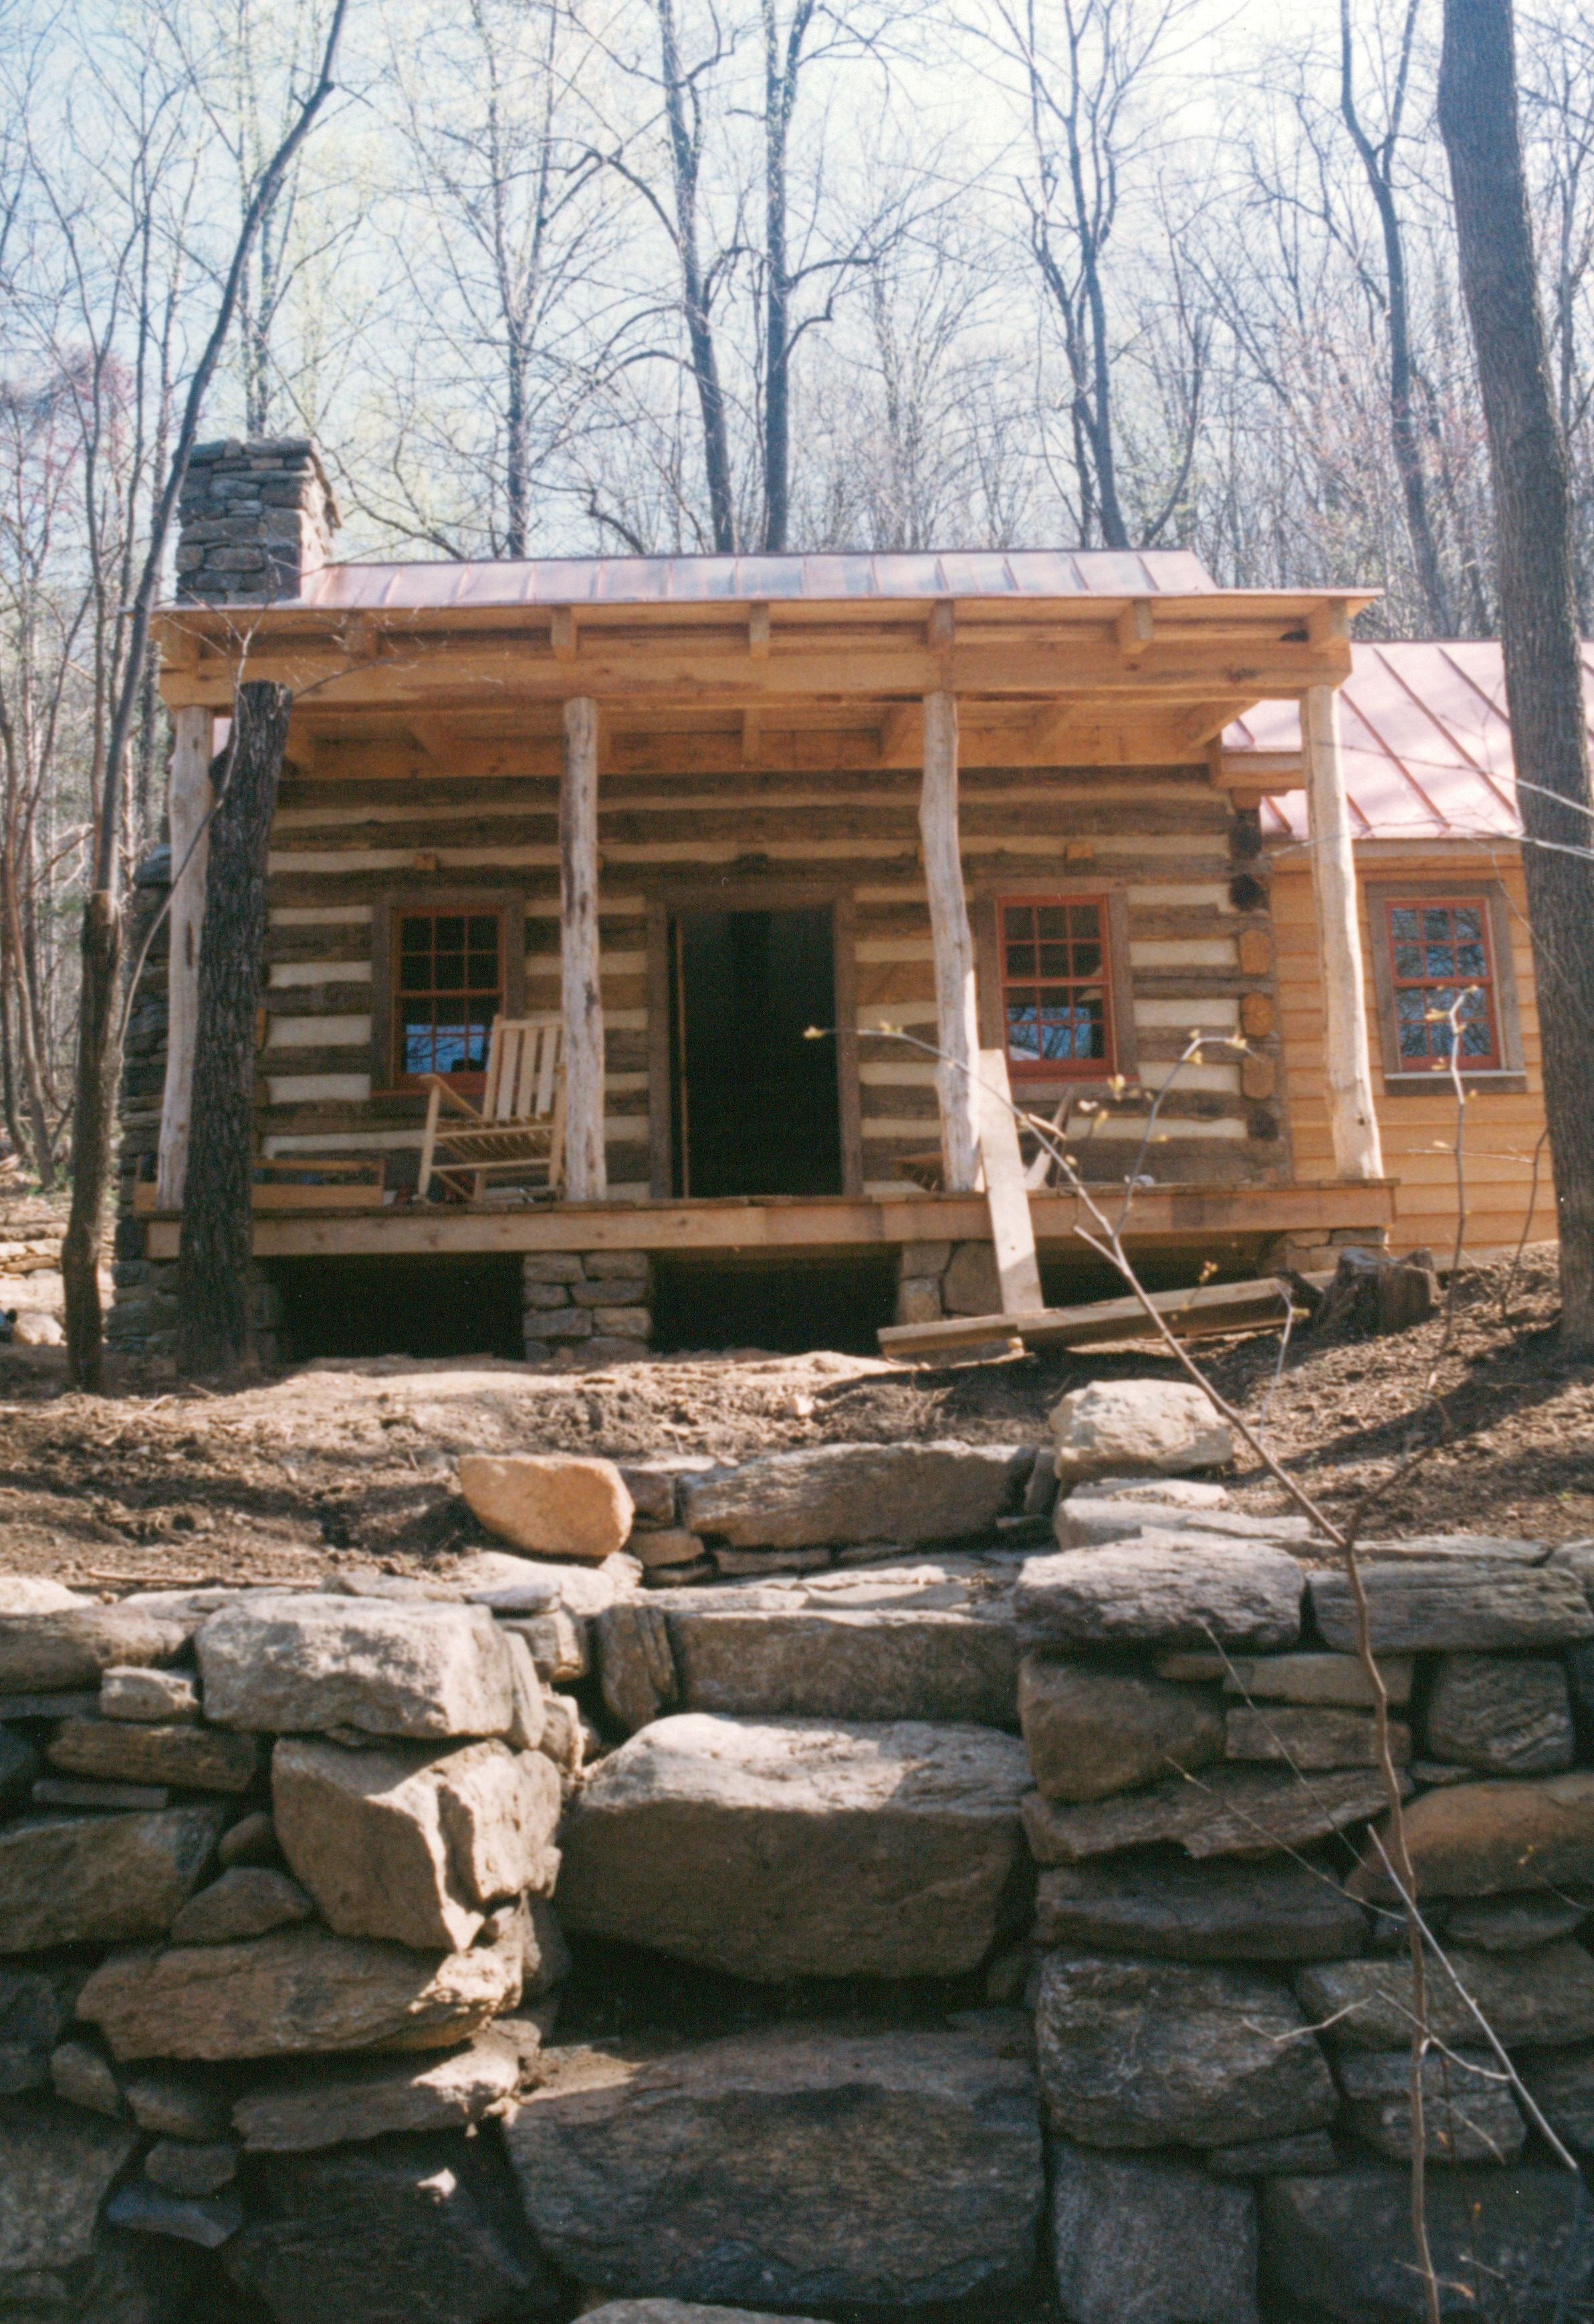 Building An Affordable Cabin Awesome 30 Affordable Small Log Cabin Ideas with Awesome Decoration